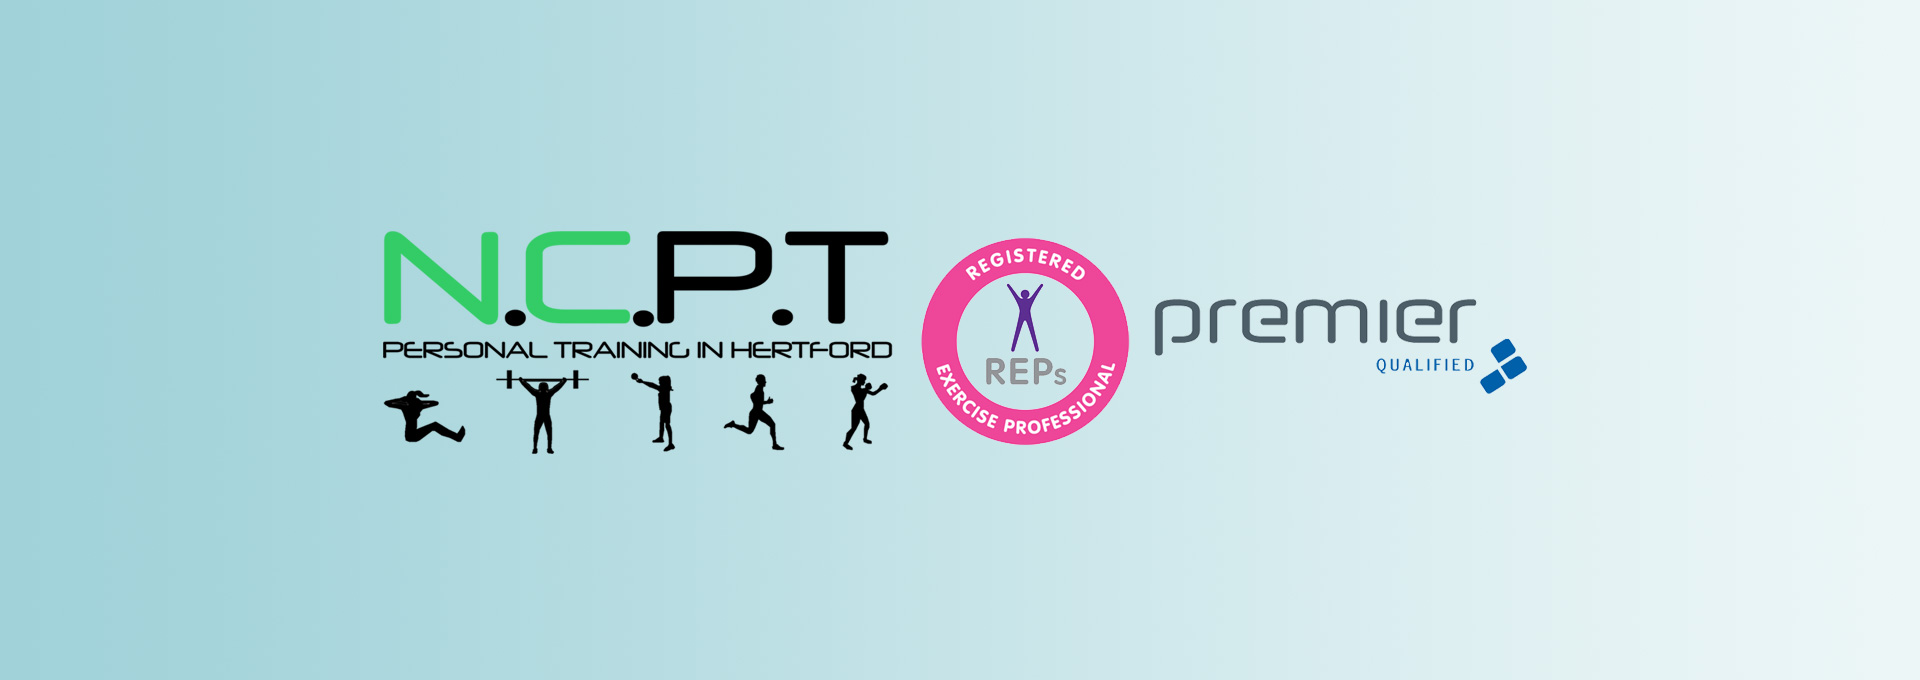 Accredited Personal Training Schools Bestbuy Overland Park